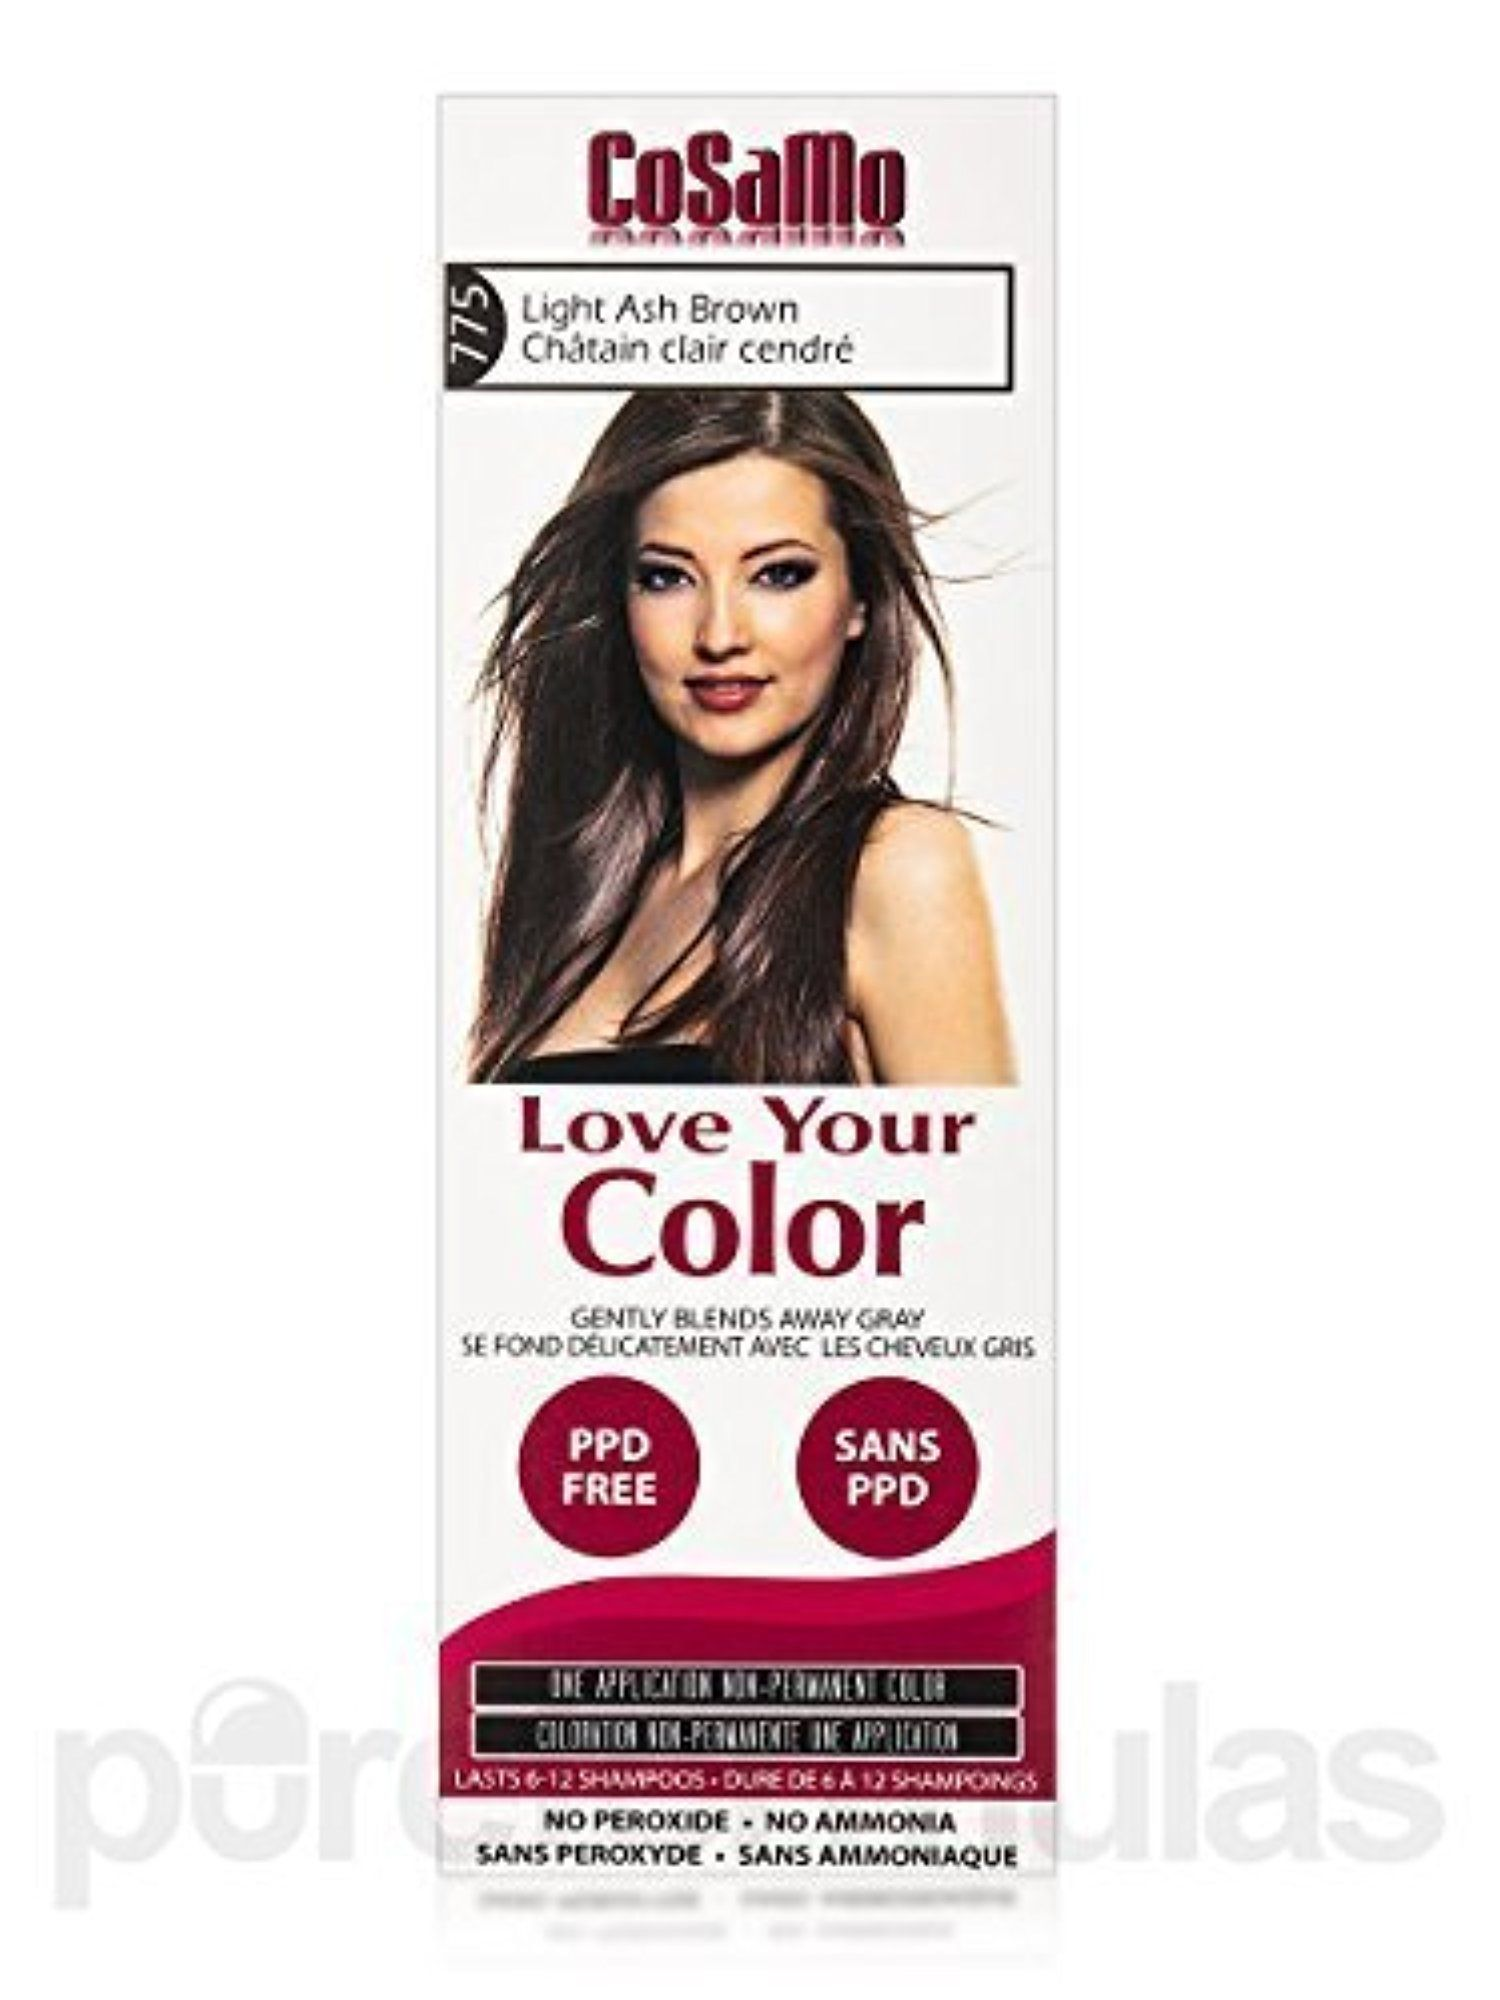 Cosamo Love Your Color Non Permanent Hair Color 775 Light Ash